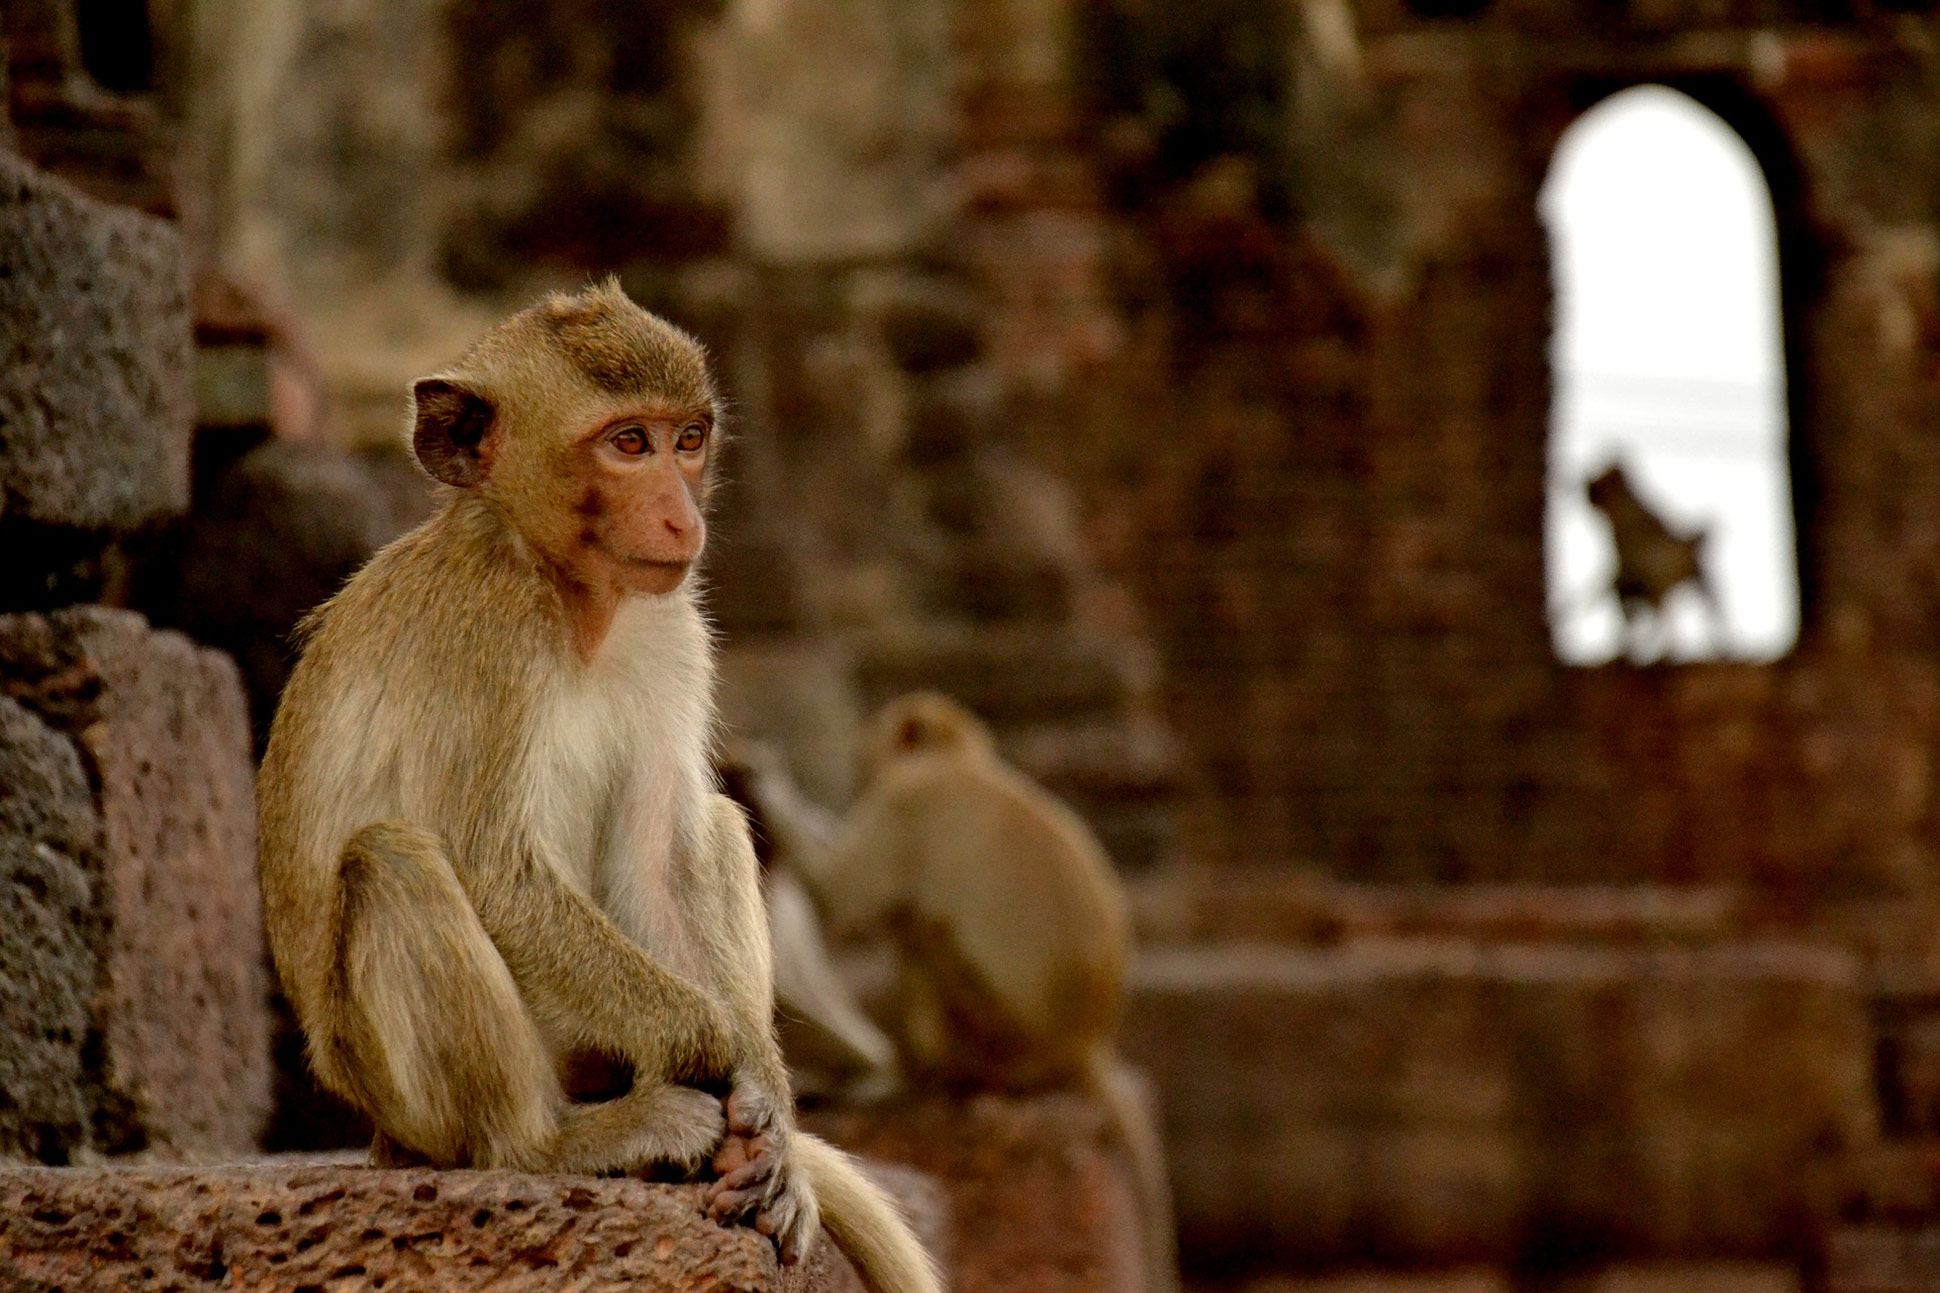 A monkey sitting in a temple in Lopburi, Thailand.